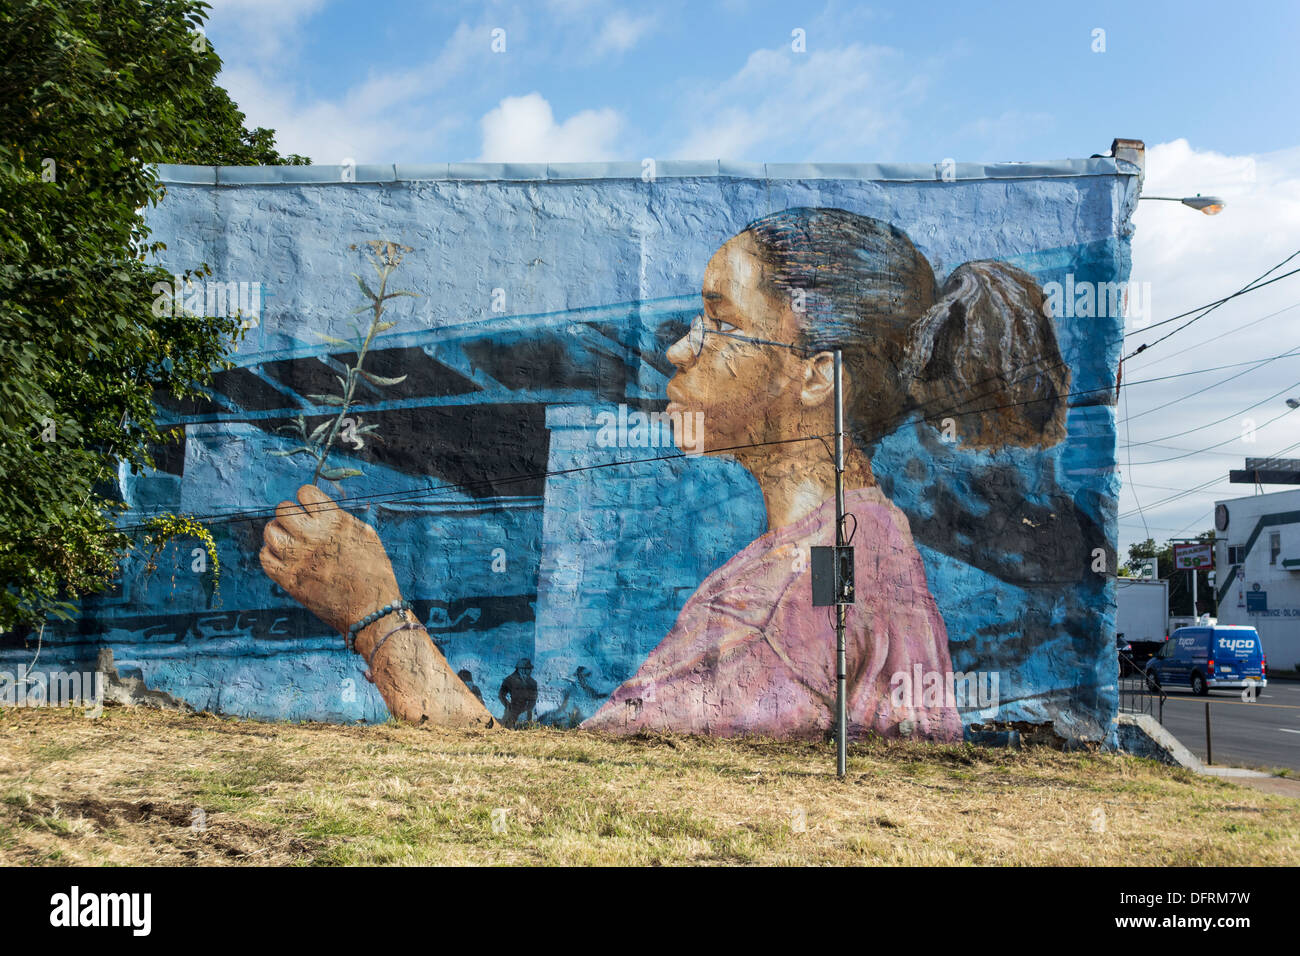 mural at Grays Ferry district, 34th and Wharton Streets, Philadelphia, PA, United States - Stock Image